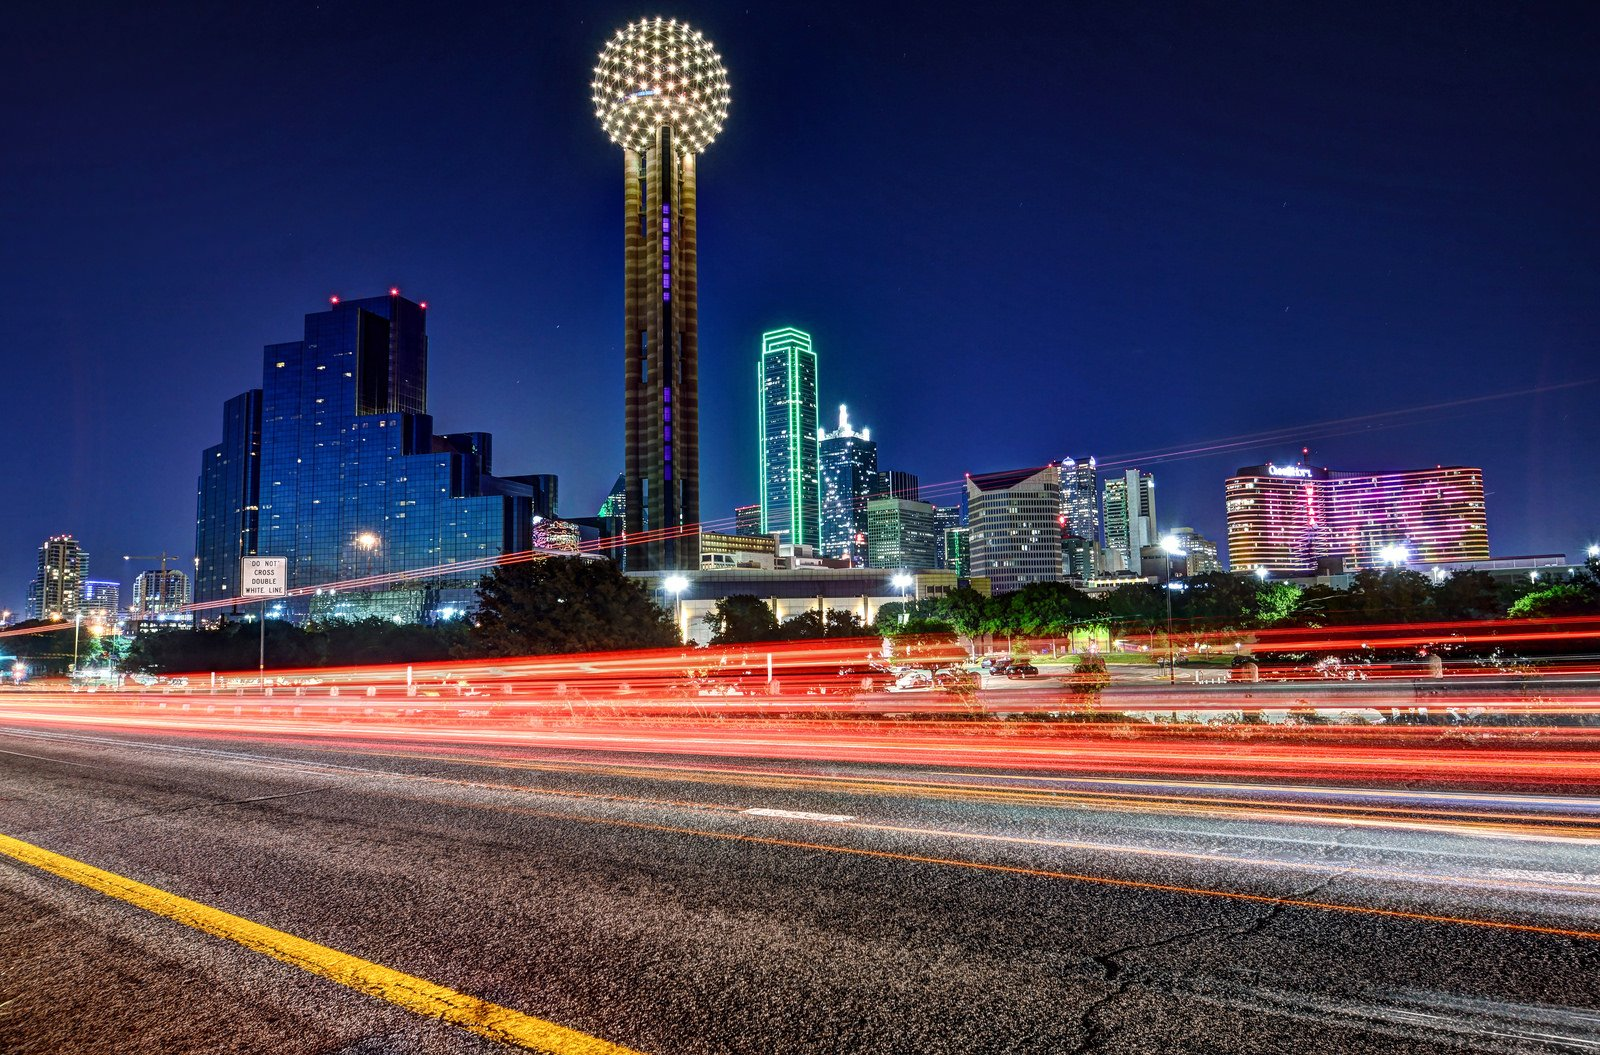 downtown dallas hd wallpapers - photo #4